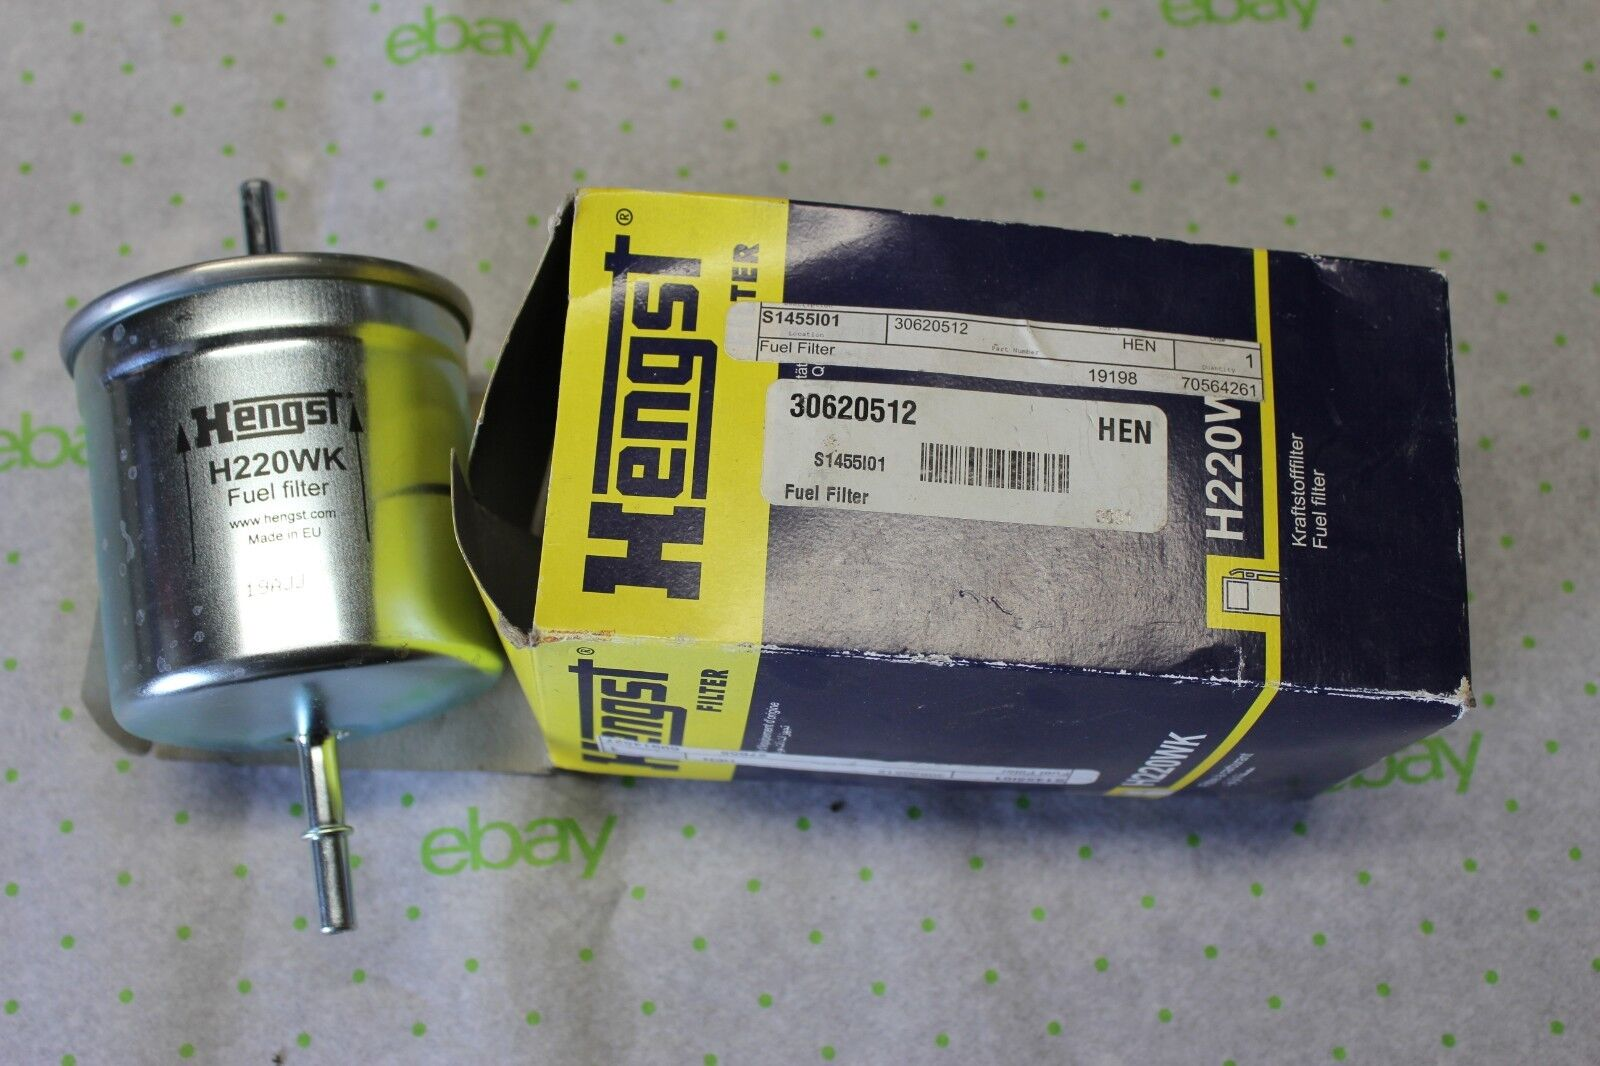 Used Volvo Filters For Sale 740 Fuel Filter Location Gas C70 S40 S60 S80 V40 V70 Xc70 Xc90 Hengst 30620512